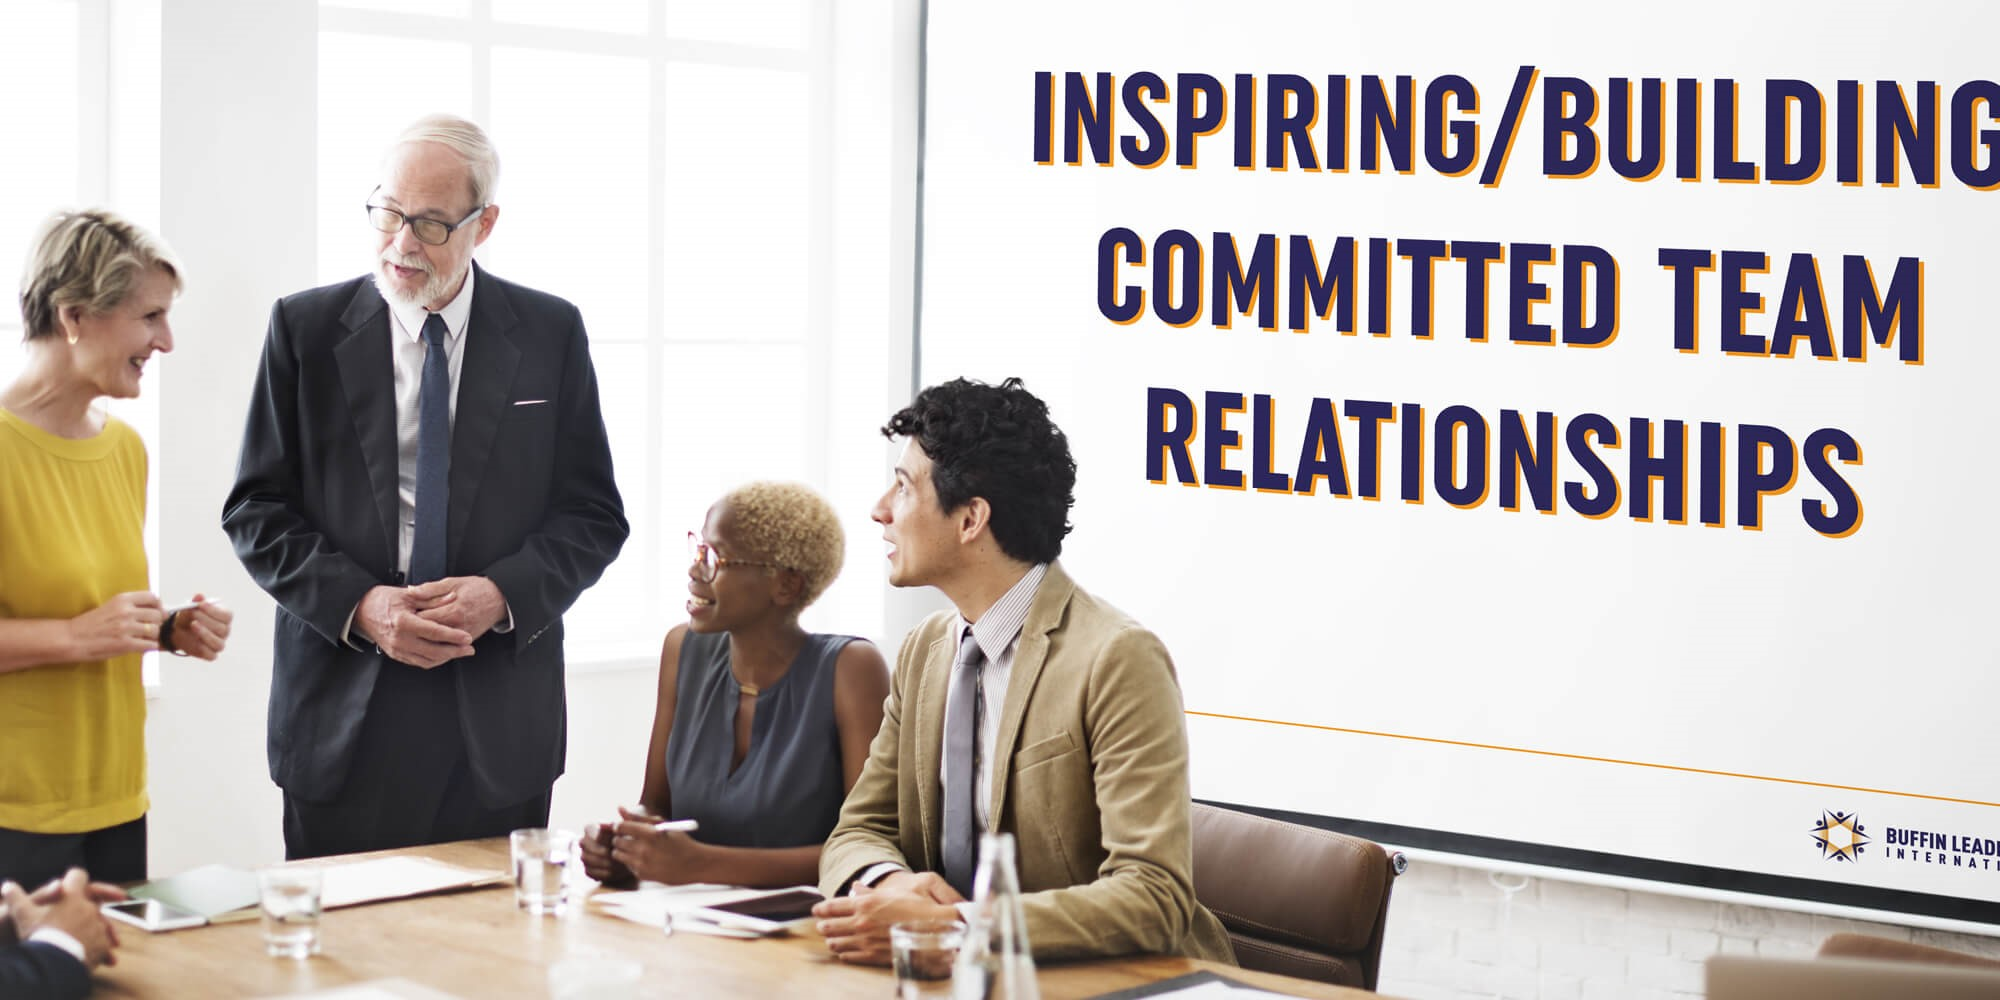 Inspiring/Building Committed Team Relationships